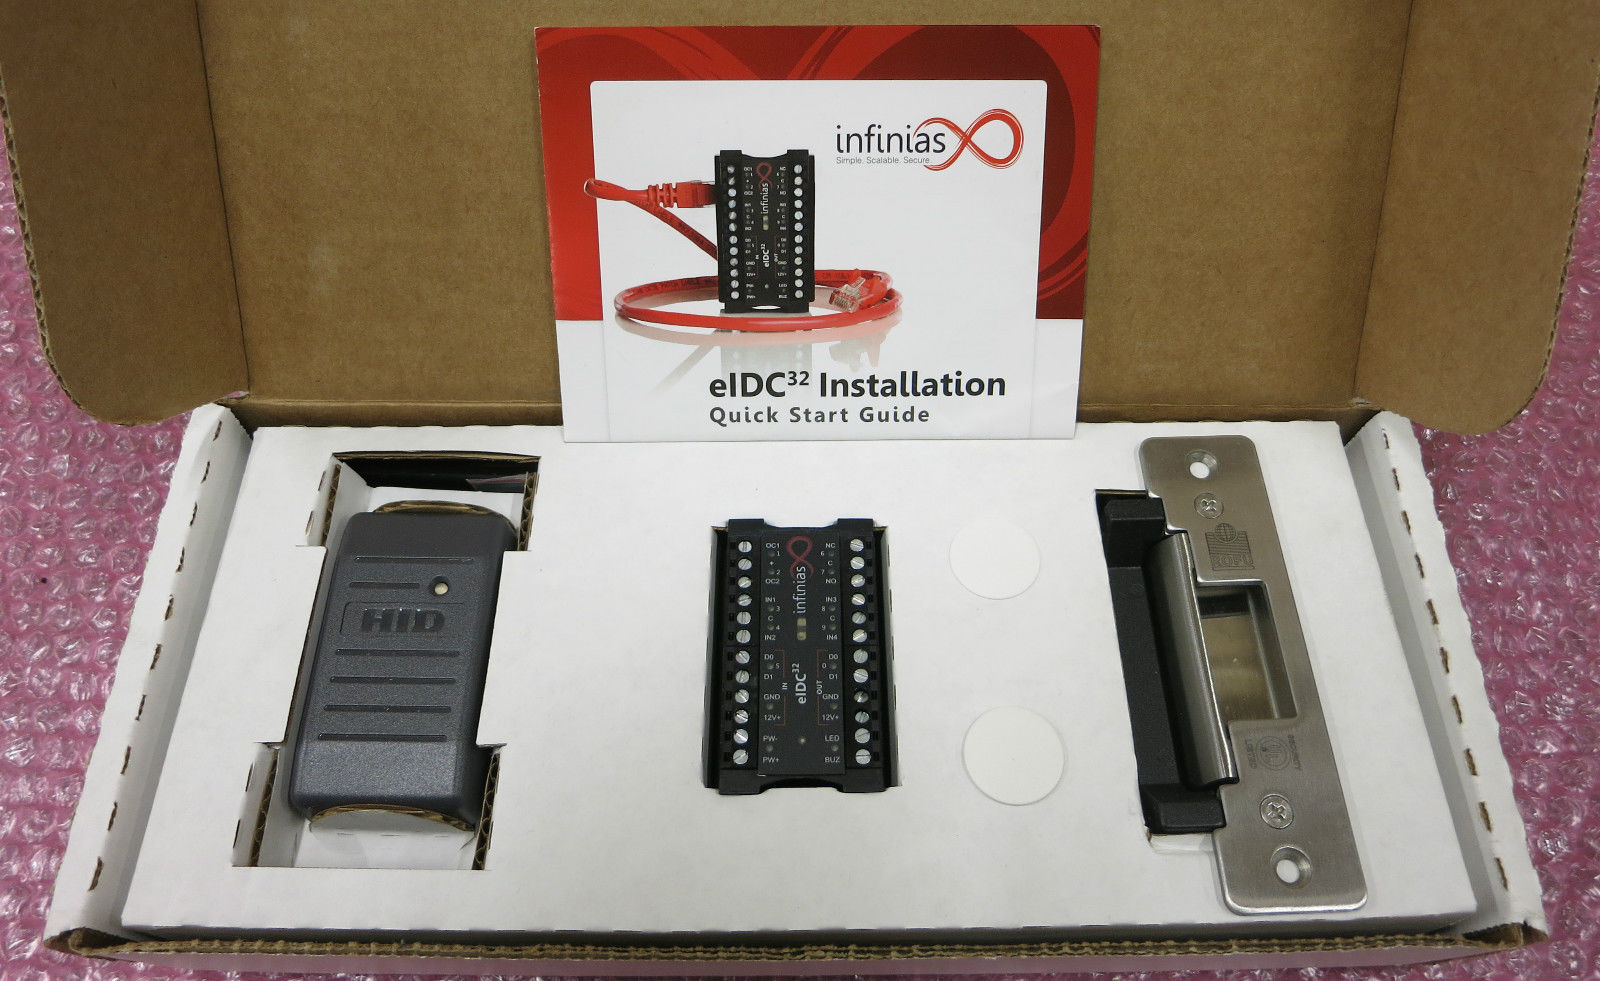 Infinias Eidc32 Manual Access Control Wiring Diagram Upgrade One Door At A Time Locksmith Ledger